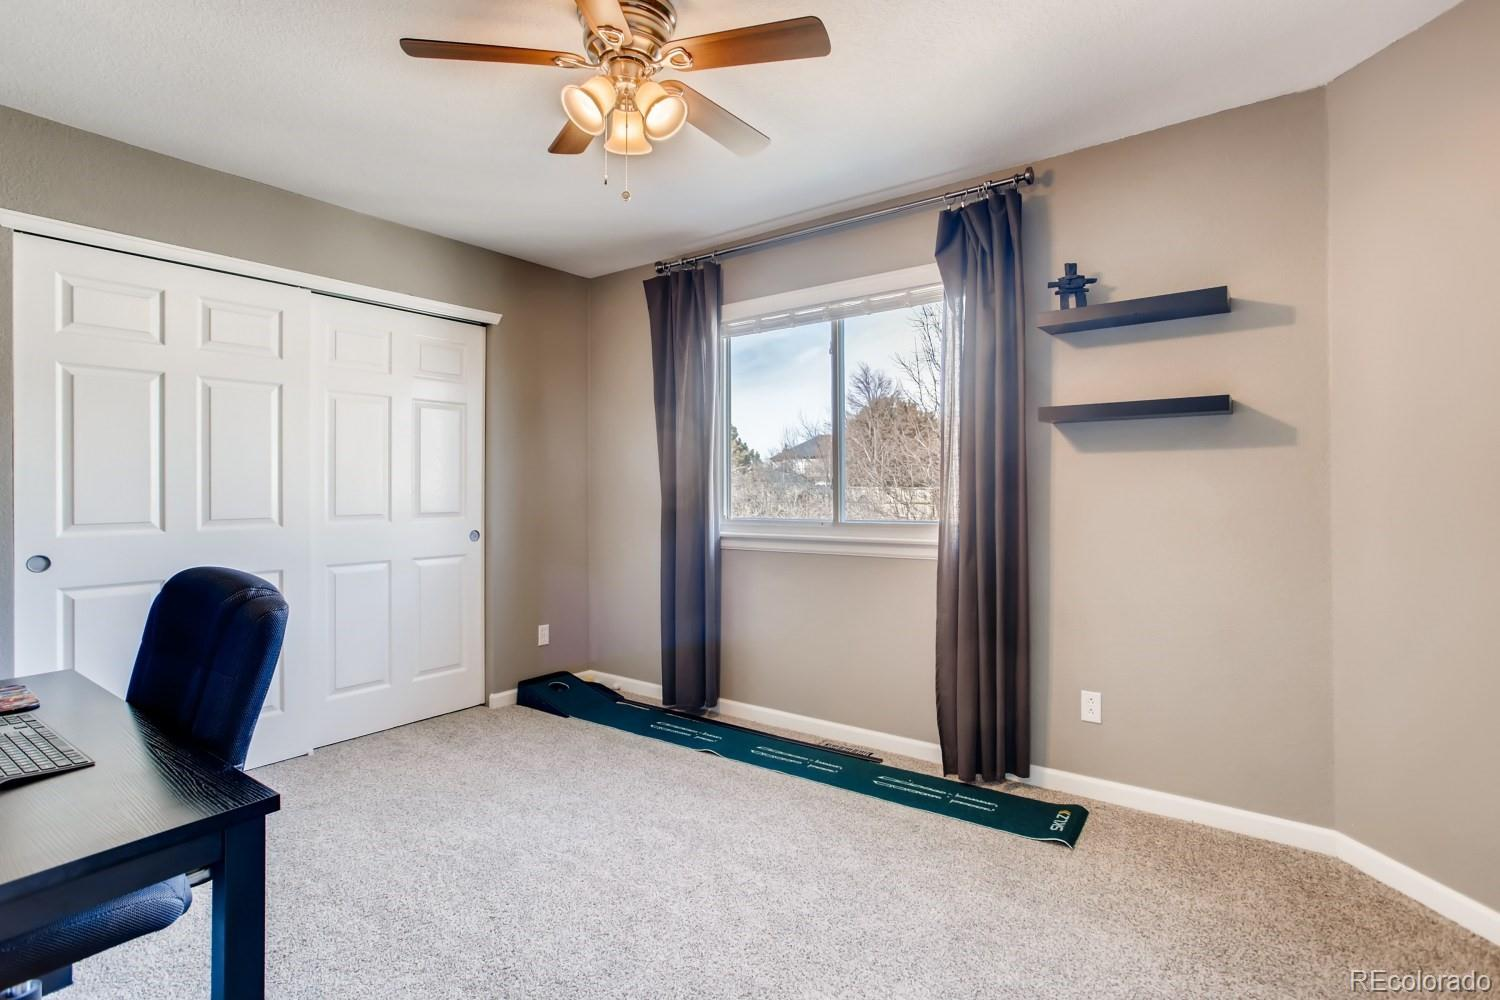 MLS# 4609575 - 23 - 8831 Miners Street, Highlands Ranch, CO 80126